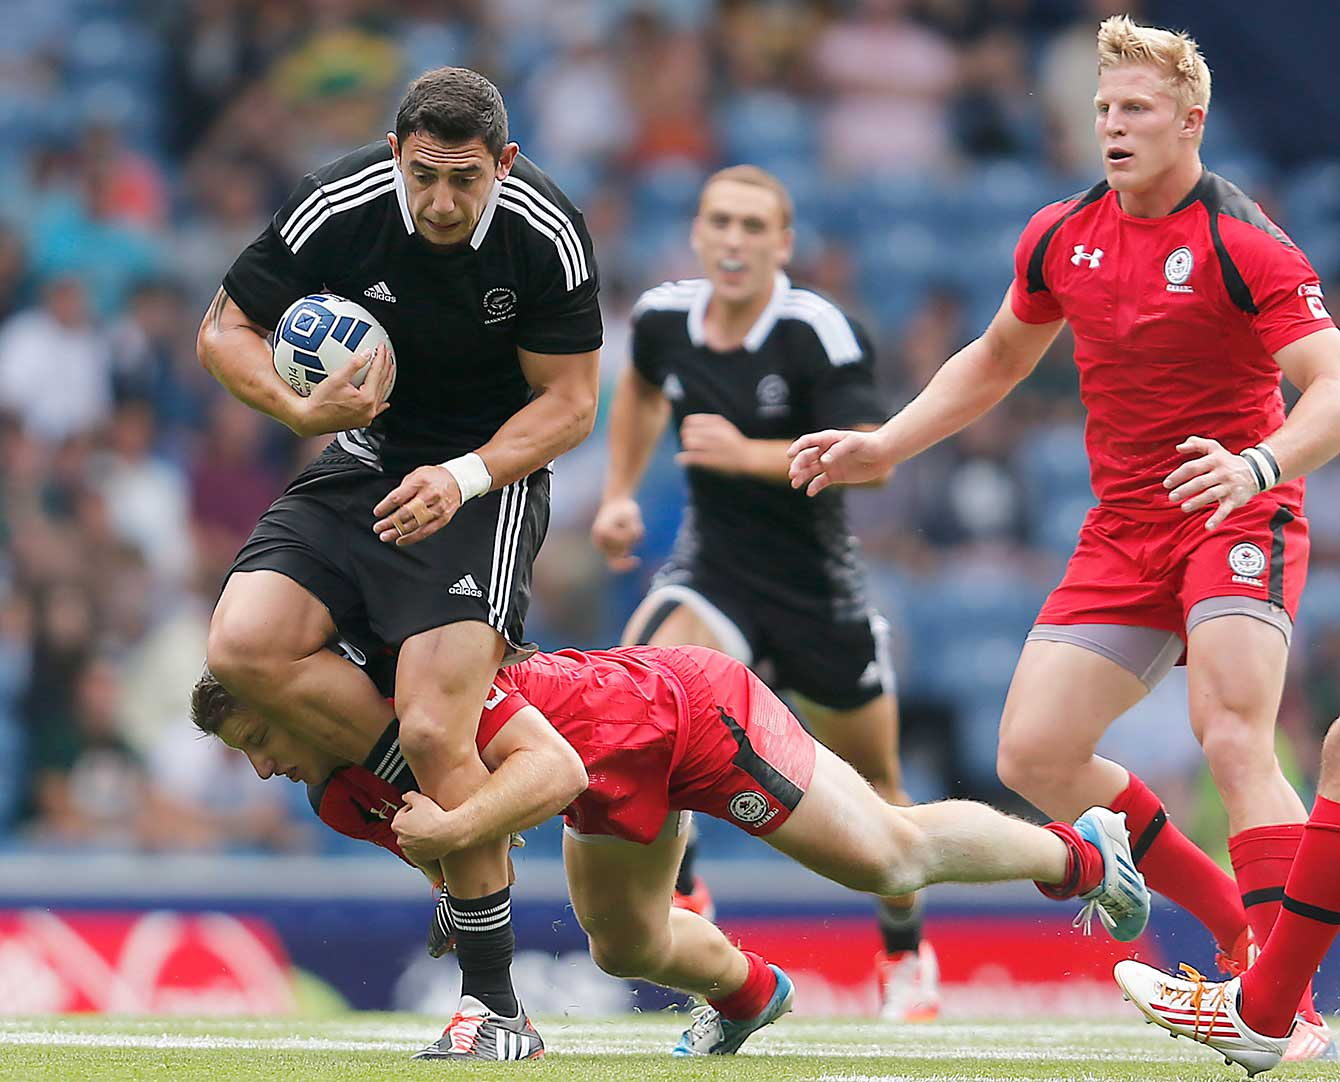 Rugby Olympia